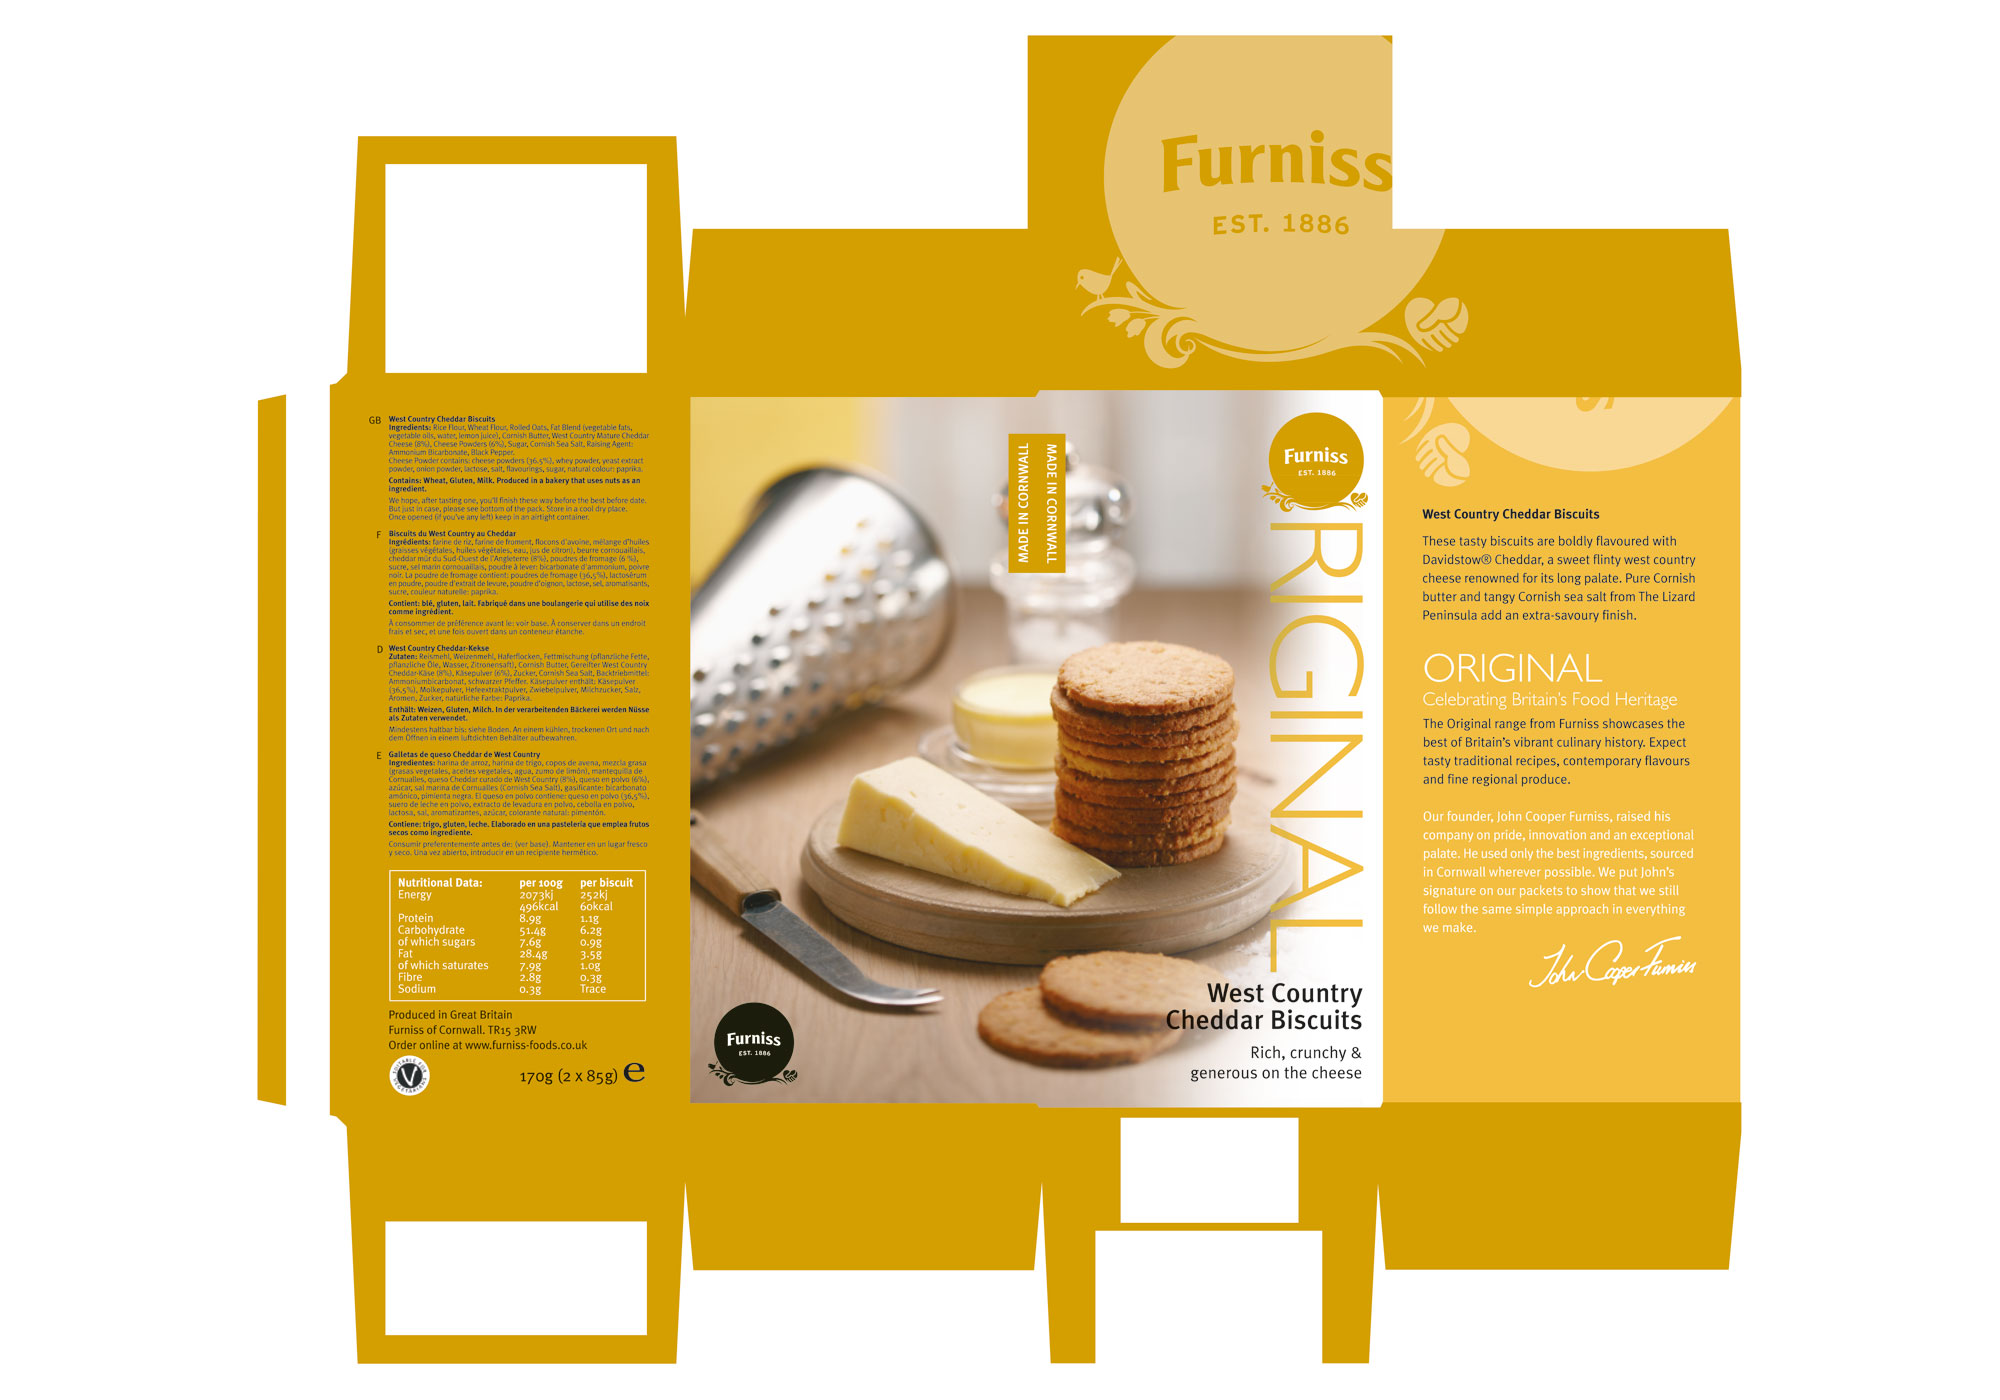 voice-group-web-client-work-2017-S1-furniss-packaging-04.jpg